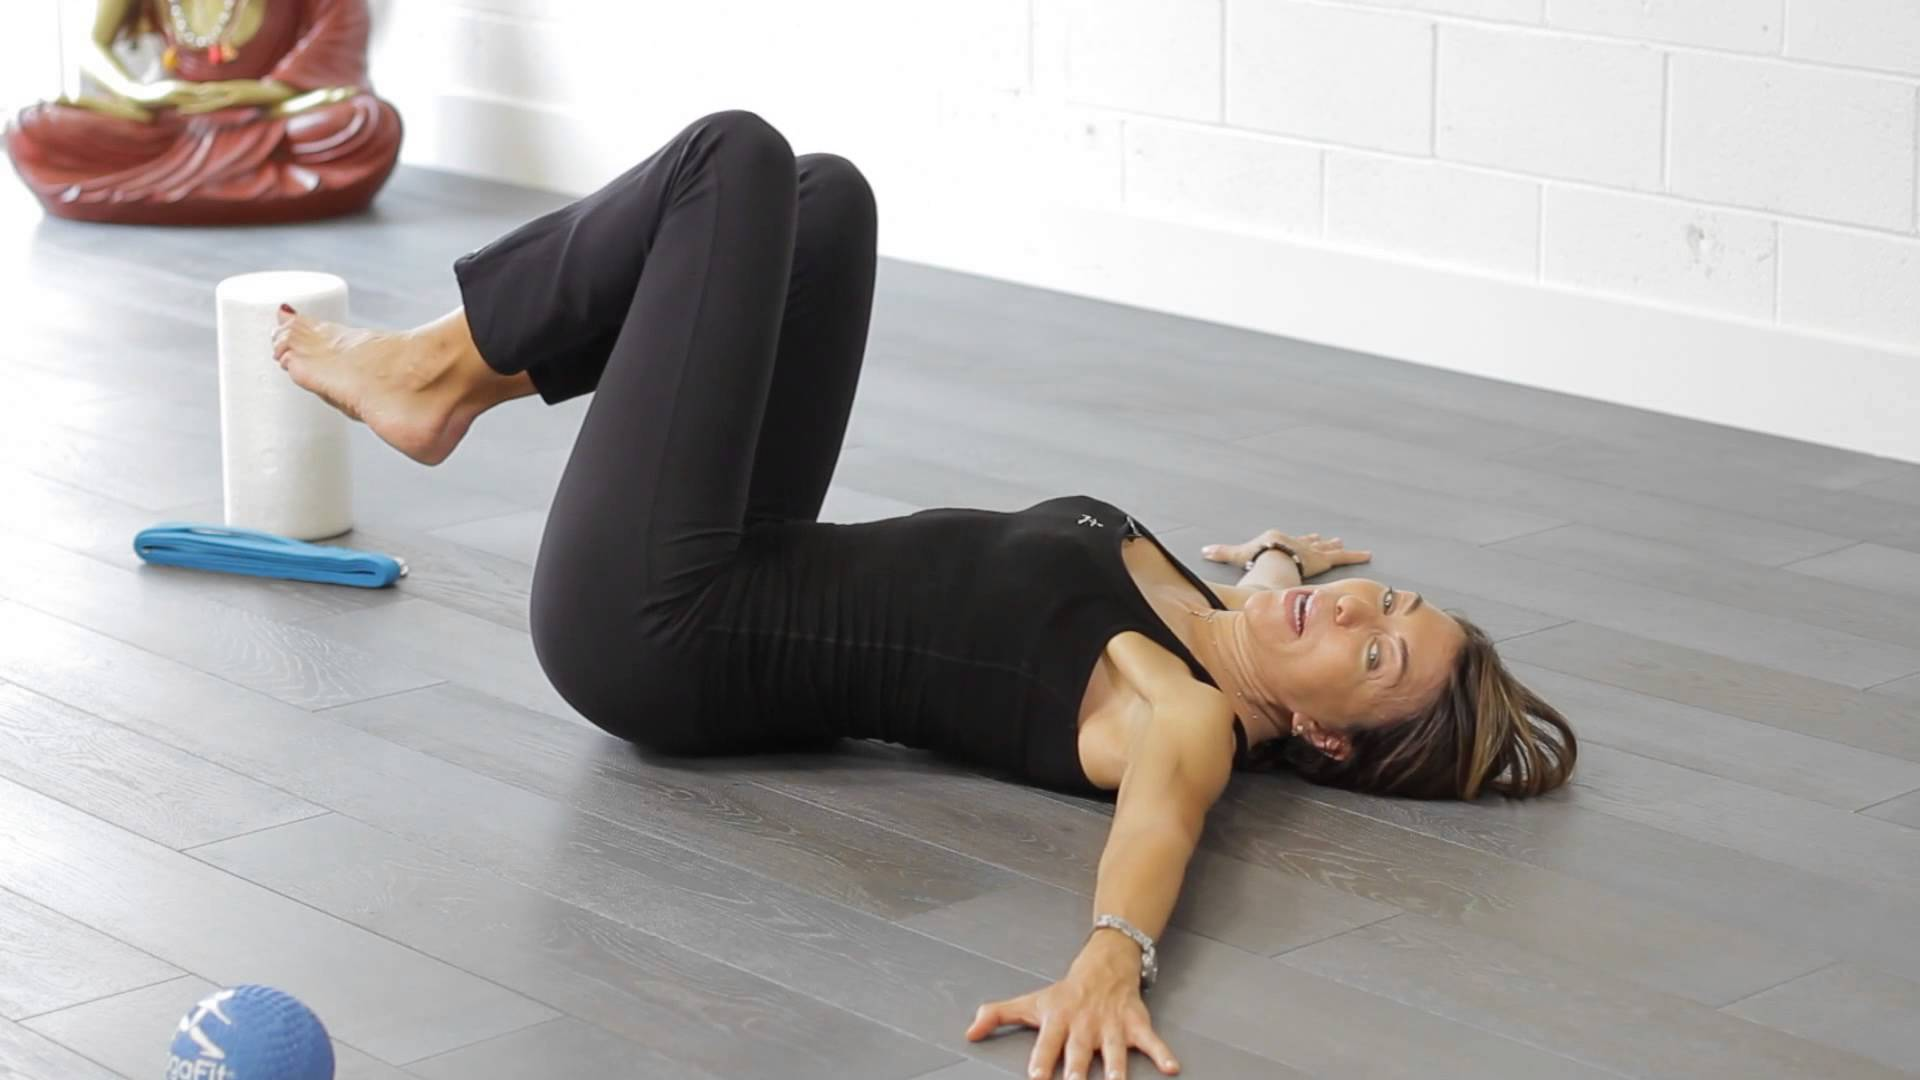 What yoga practices can help me get rid of gastric hyperacidity? 3